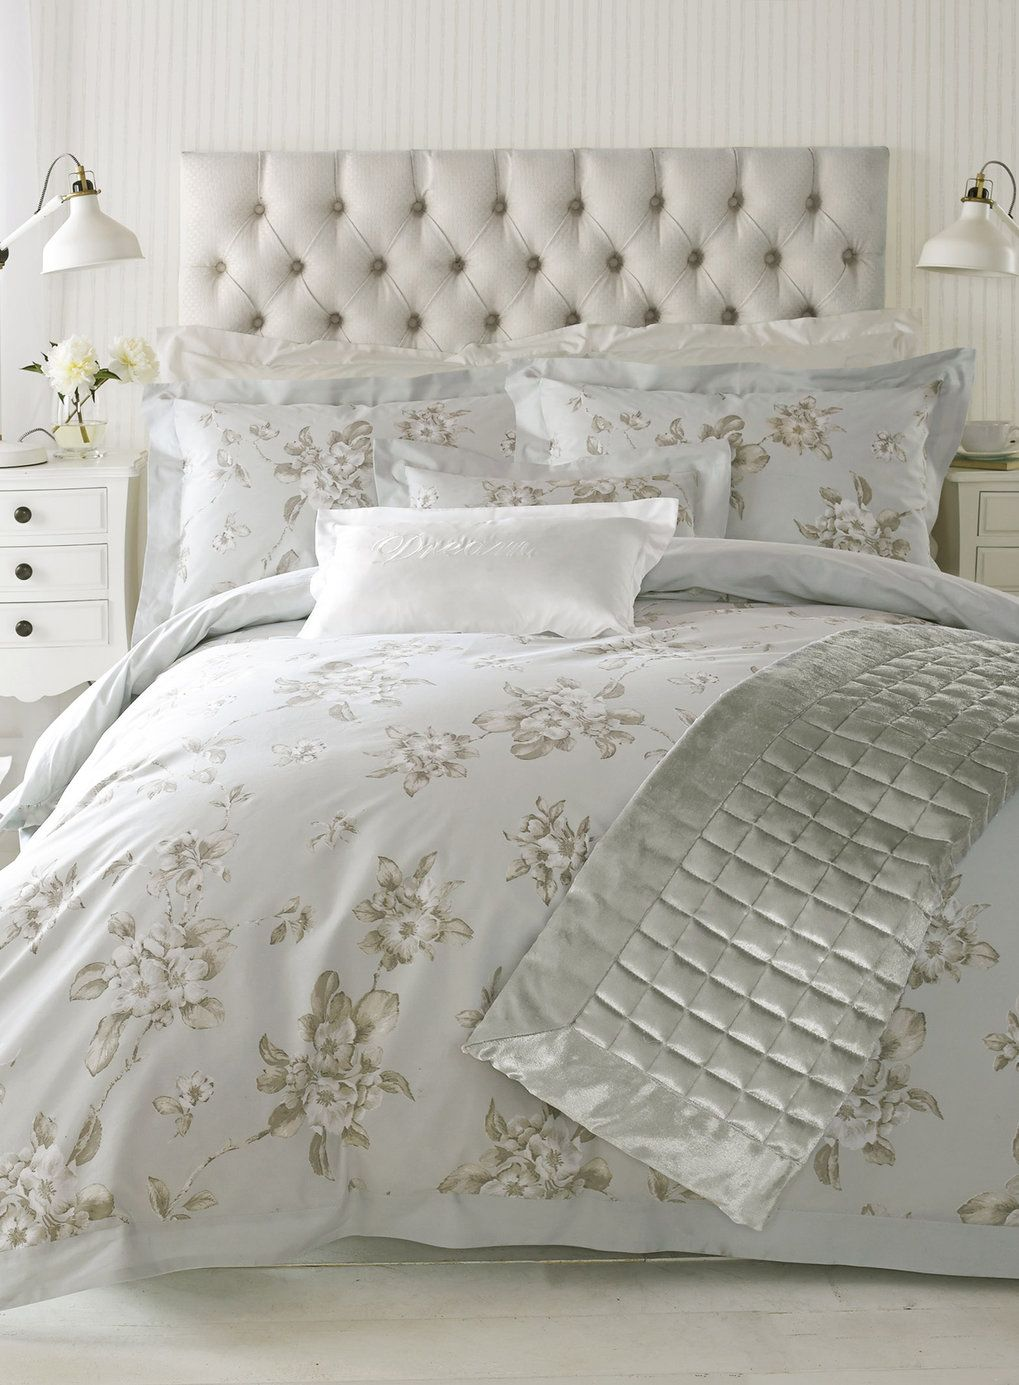 Holly Willoughby Blue Abelle bedding | Bedroom | Pinterest | Bhs ... : bhs quilted bedspreads - Adamdwight.com